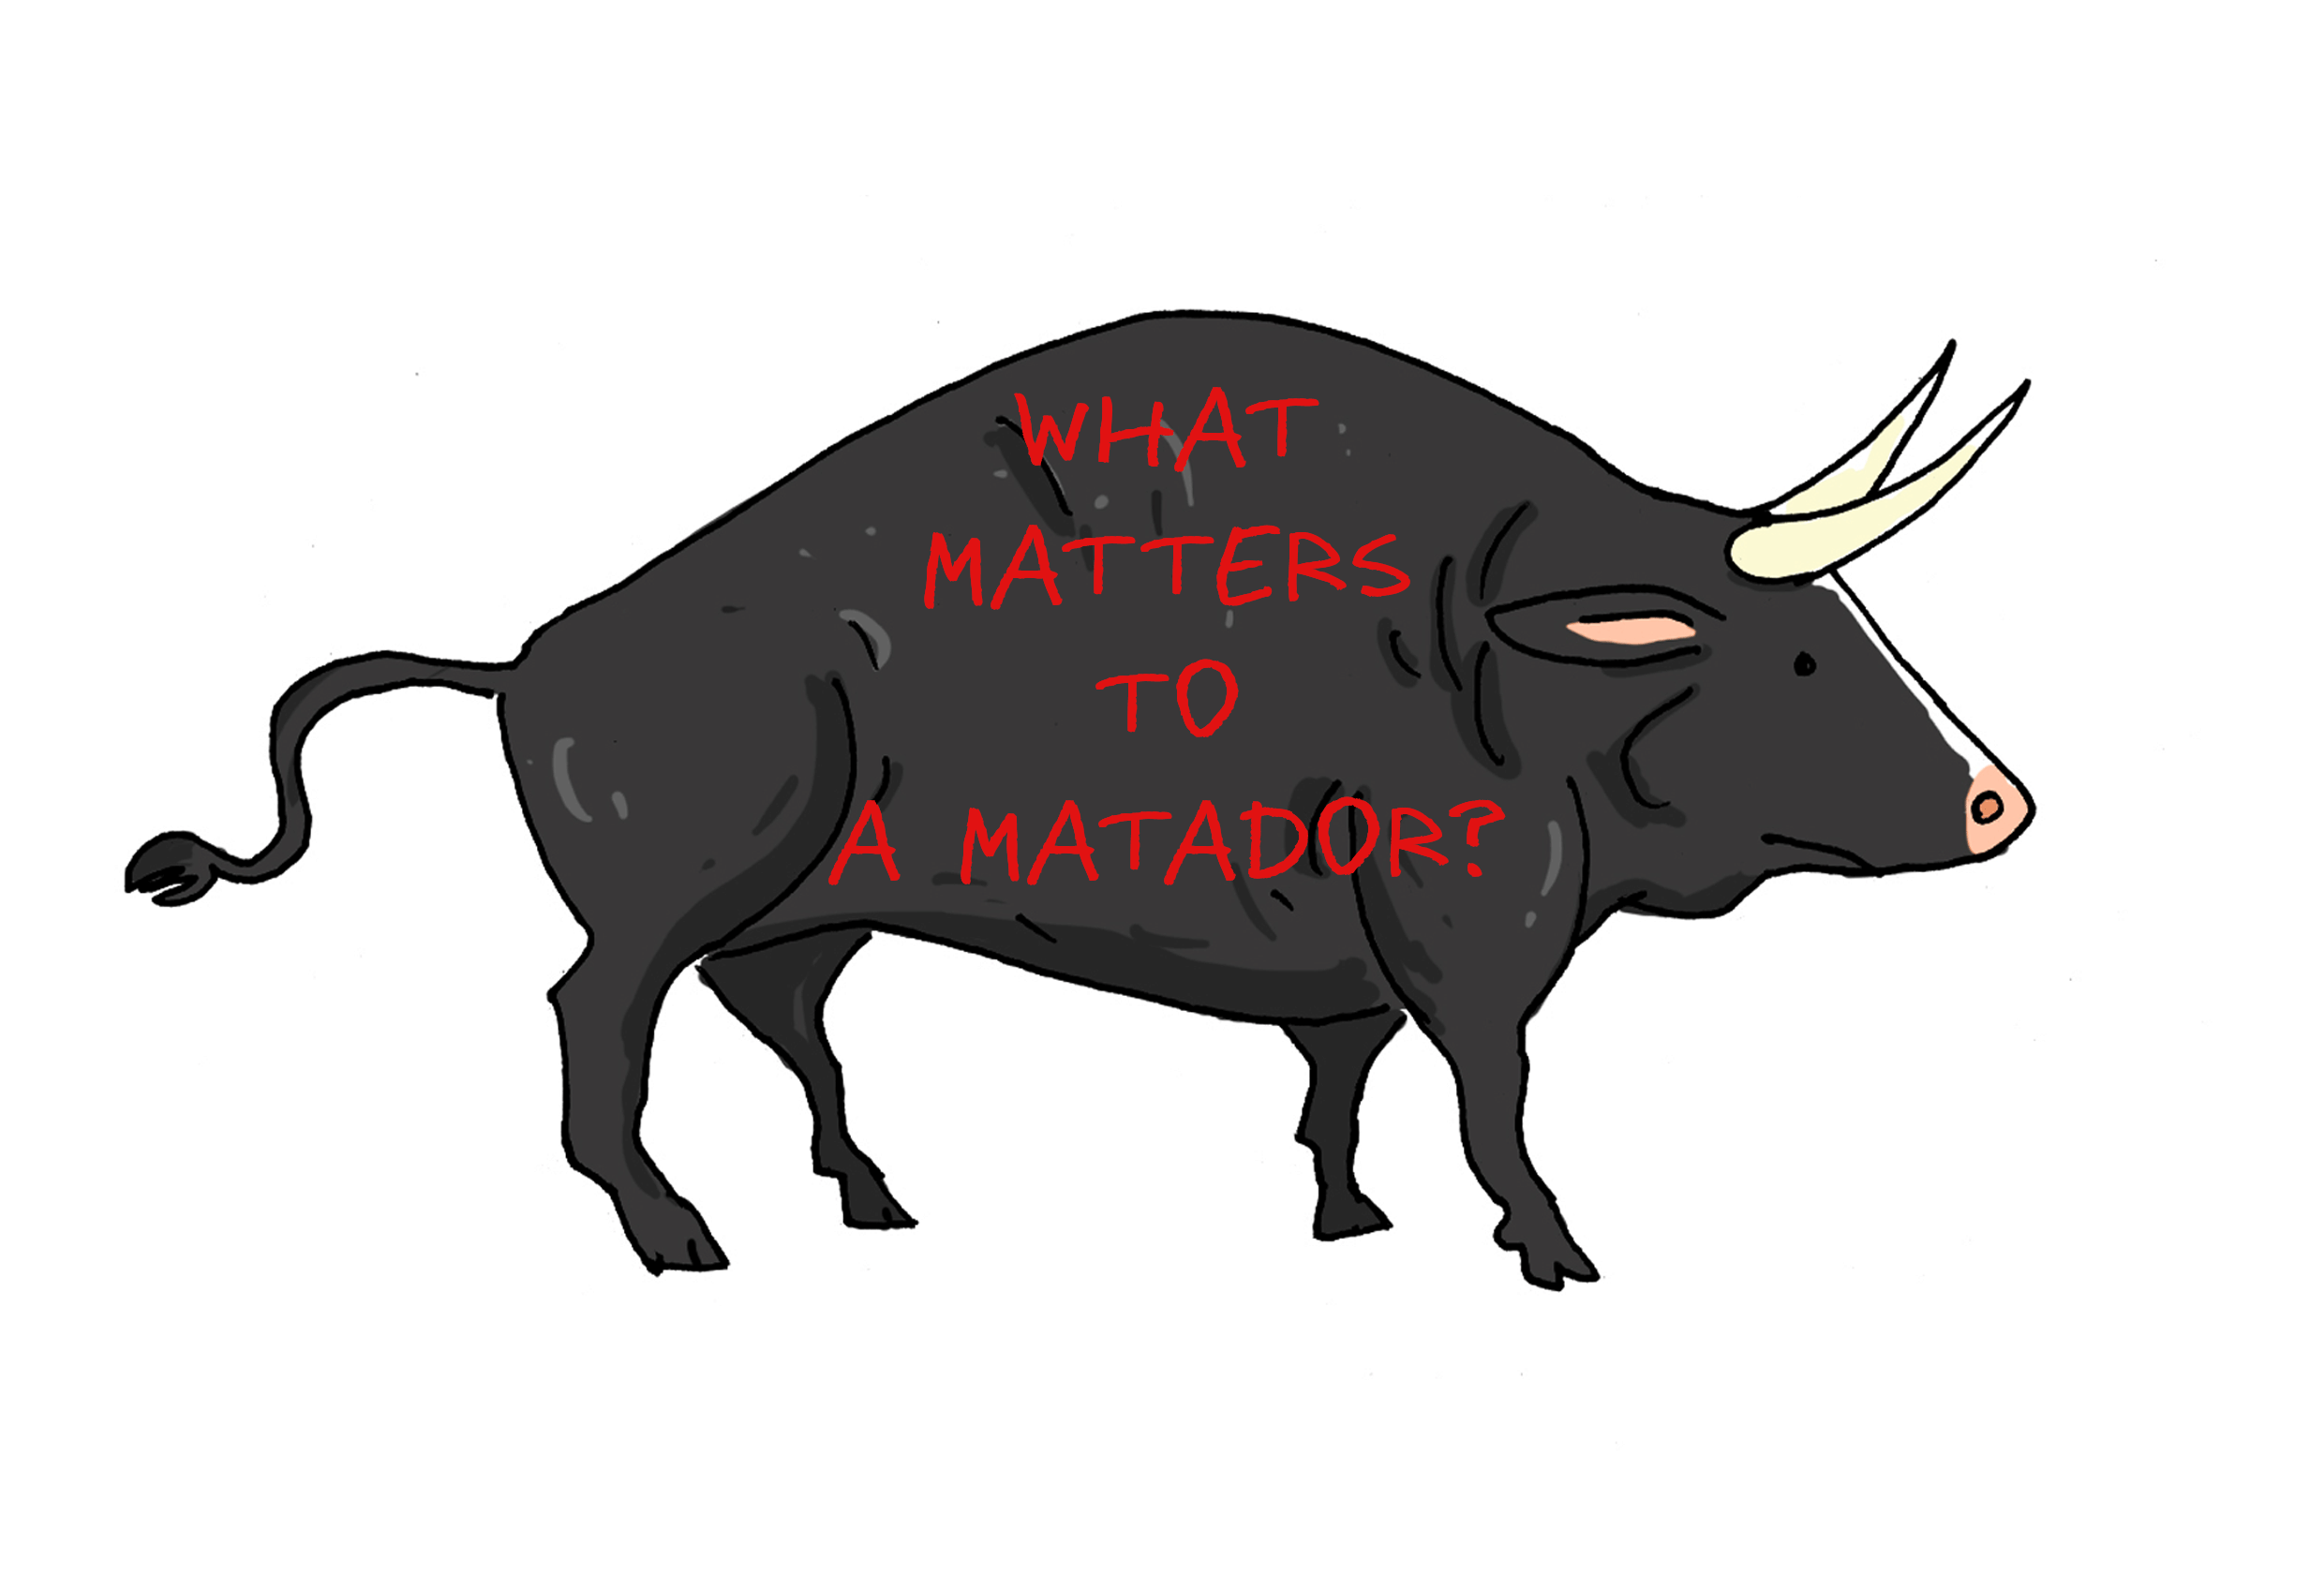 WHAT MATTERS TO A MATADOR?